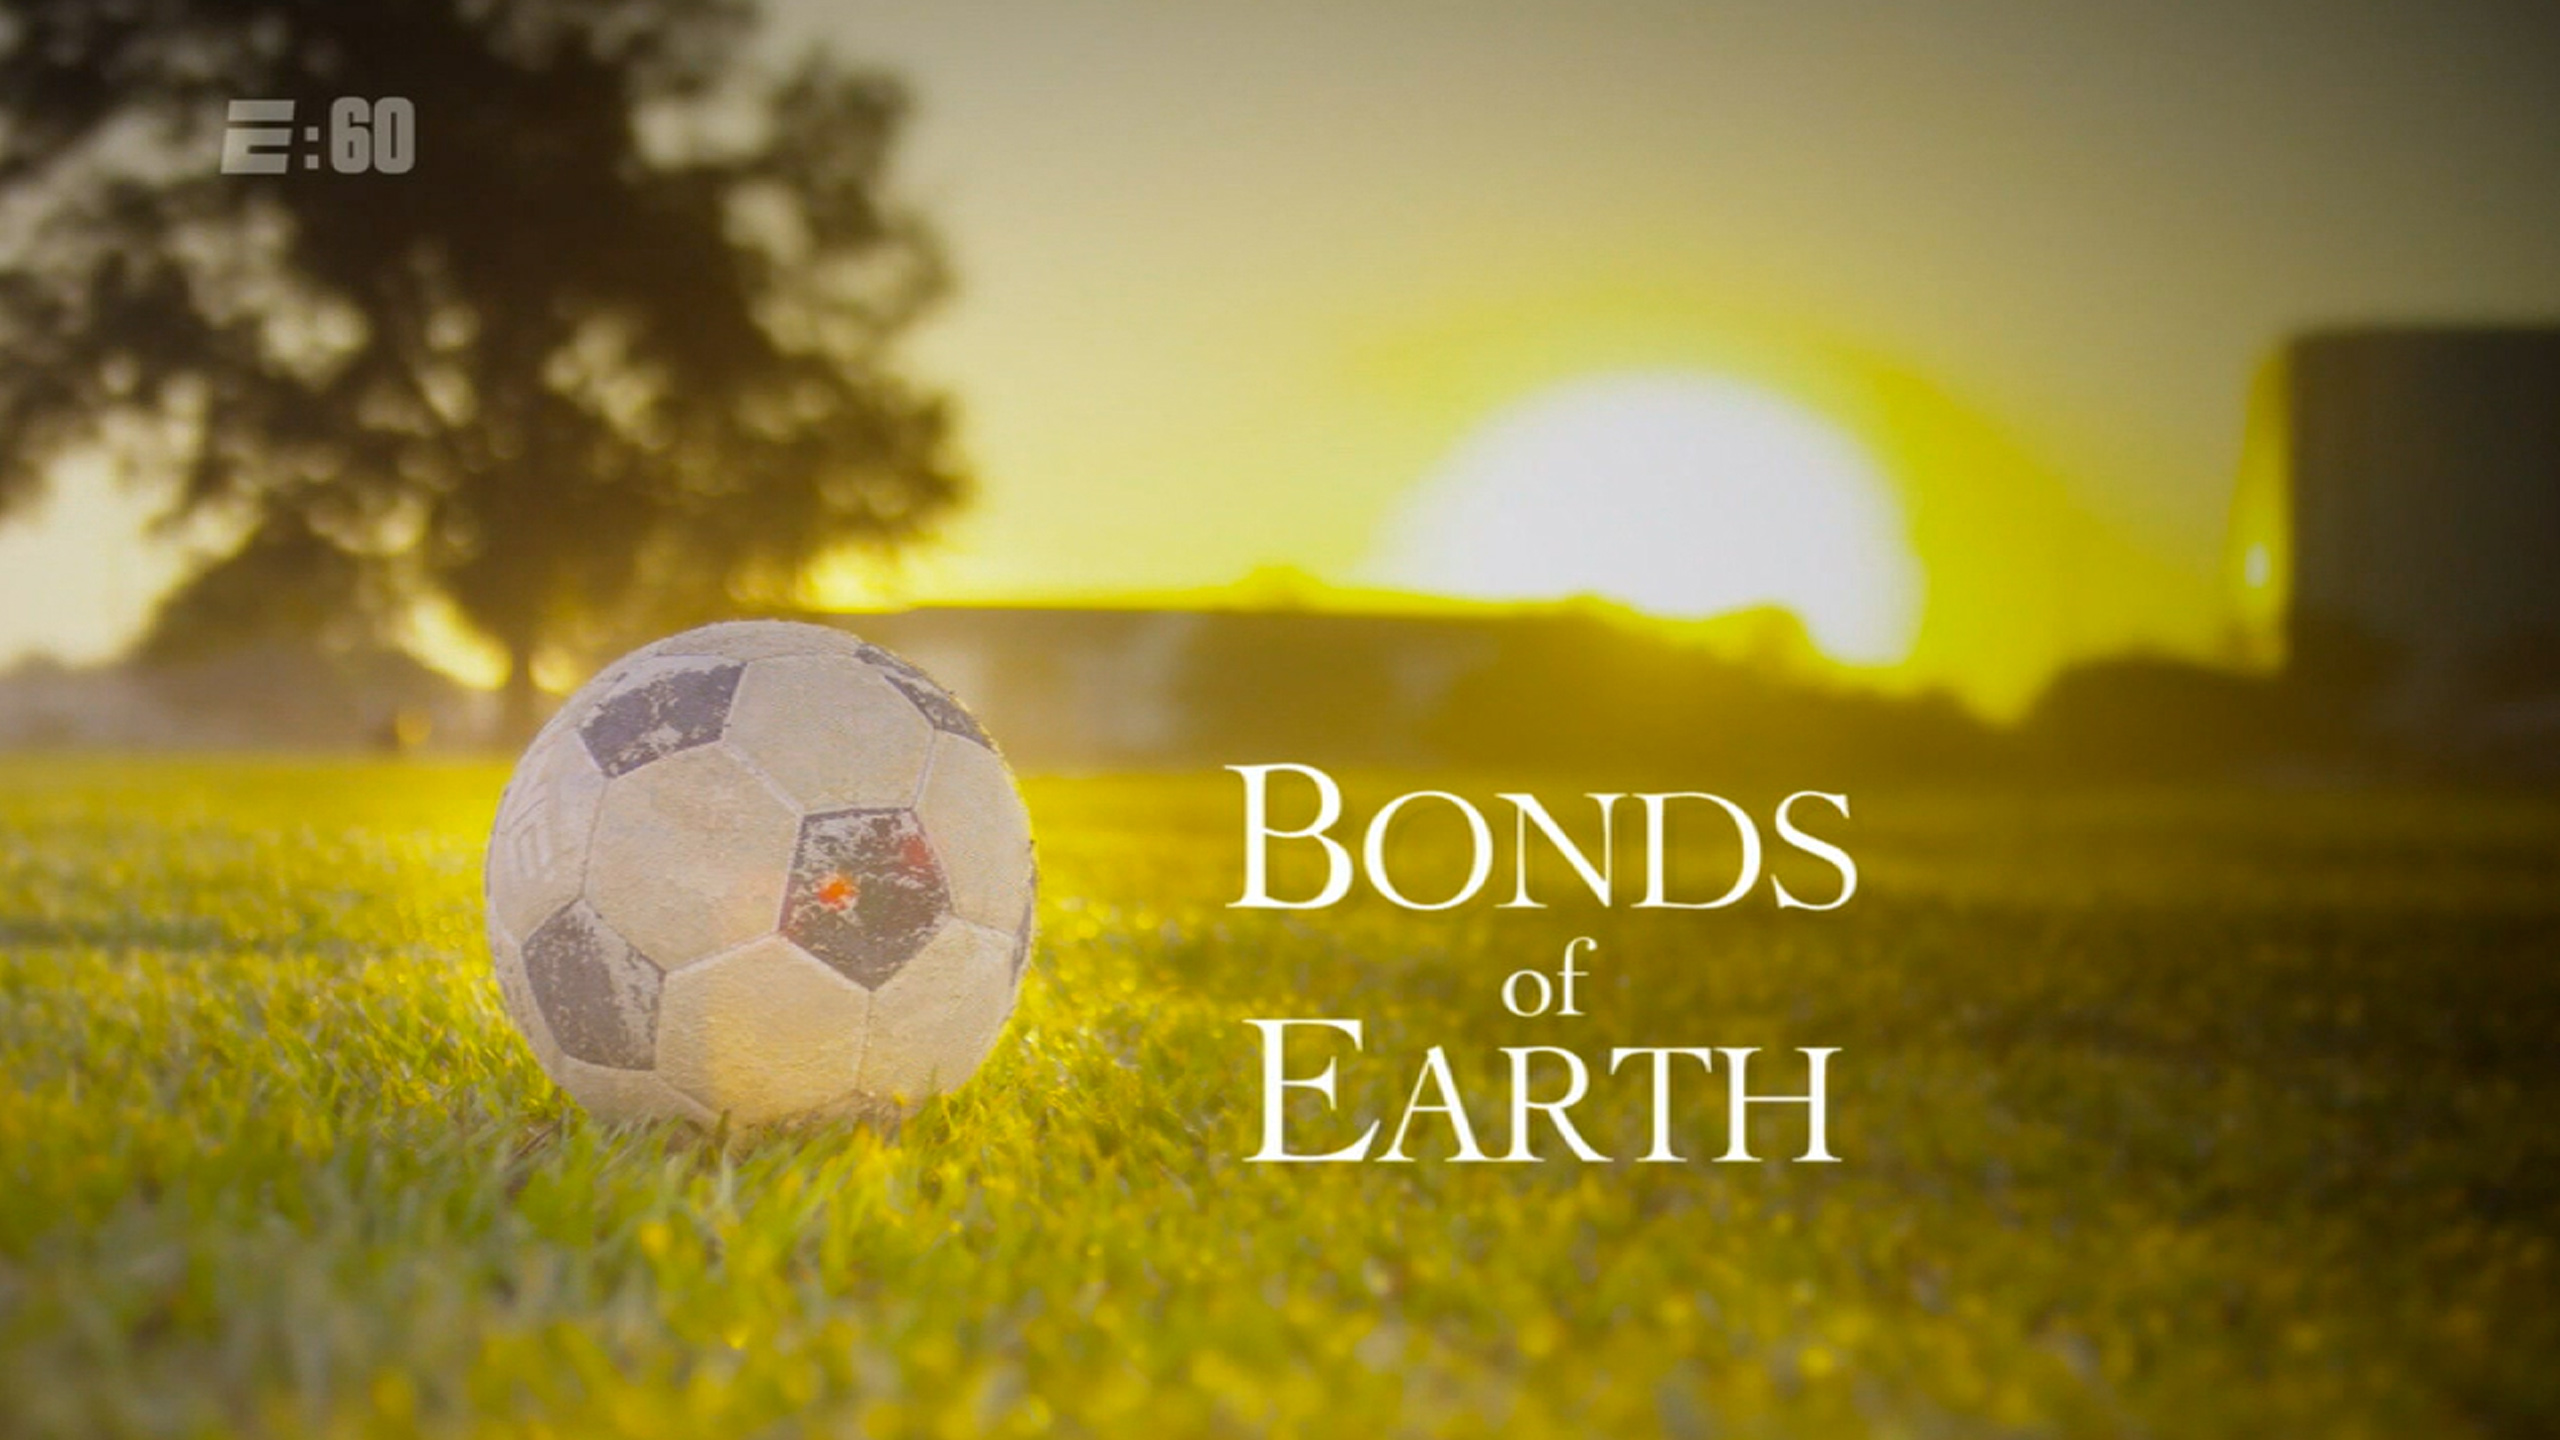 E:60 Pictures - Bonds of Earth